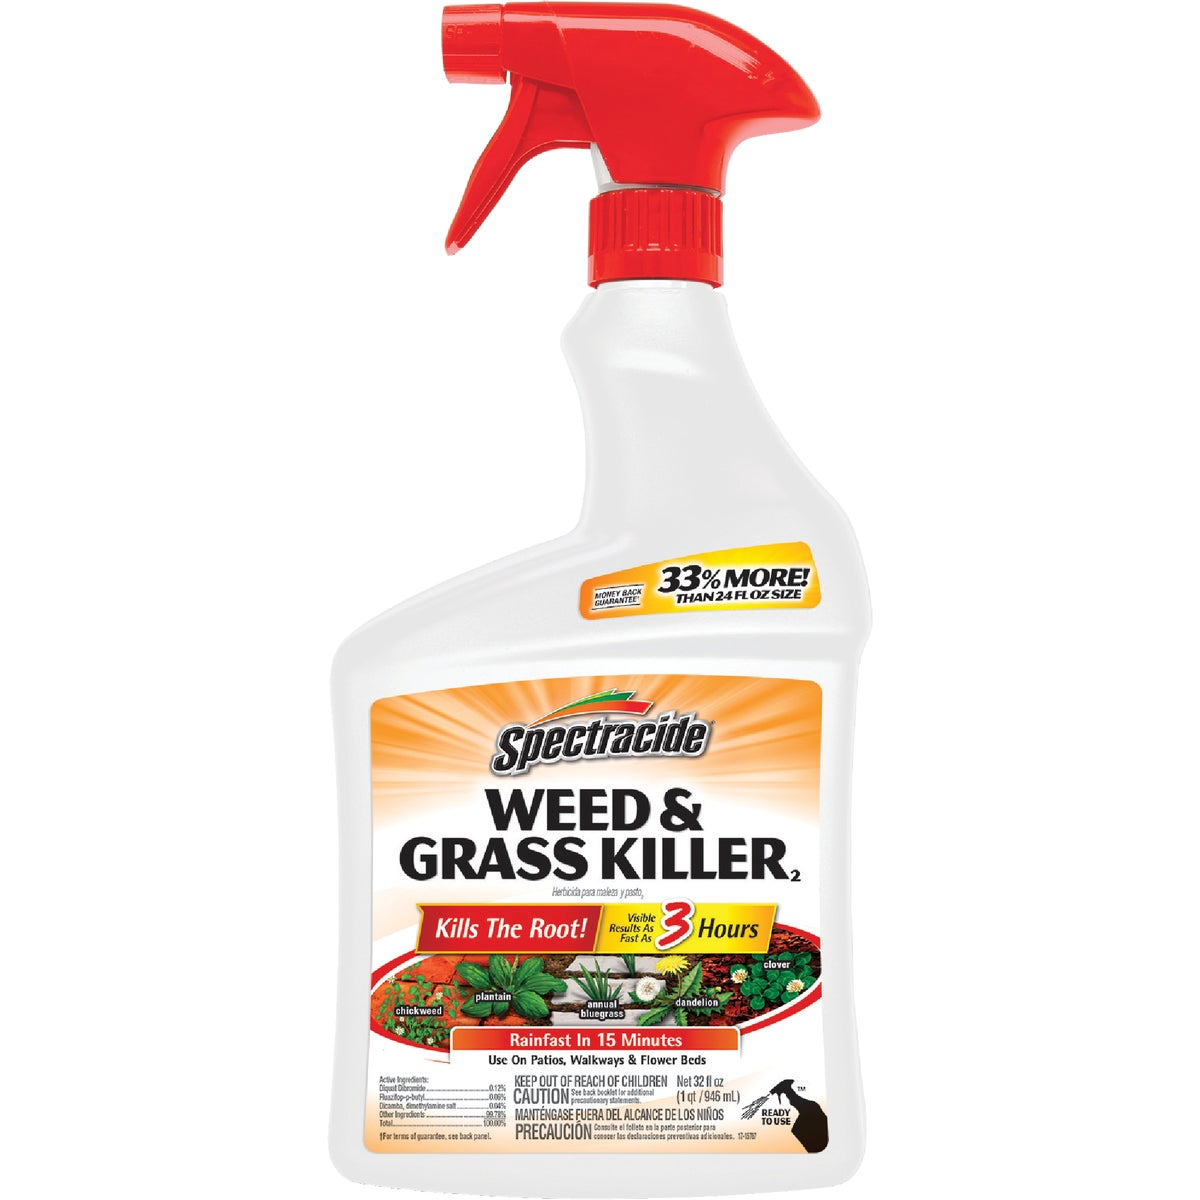 RTU WEED & GRASS KILLER - HG86019 by United Industries Co